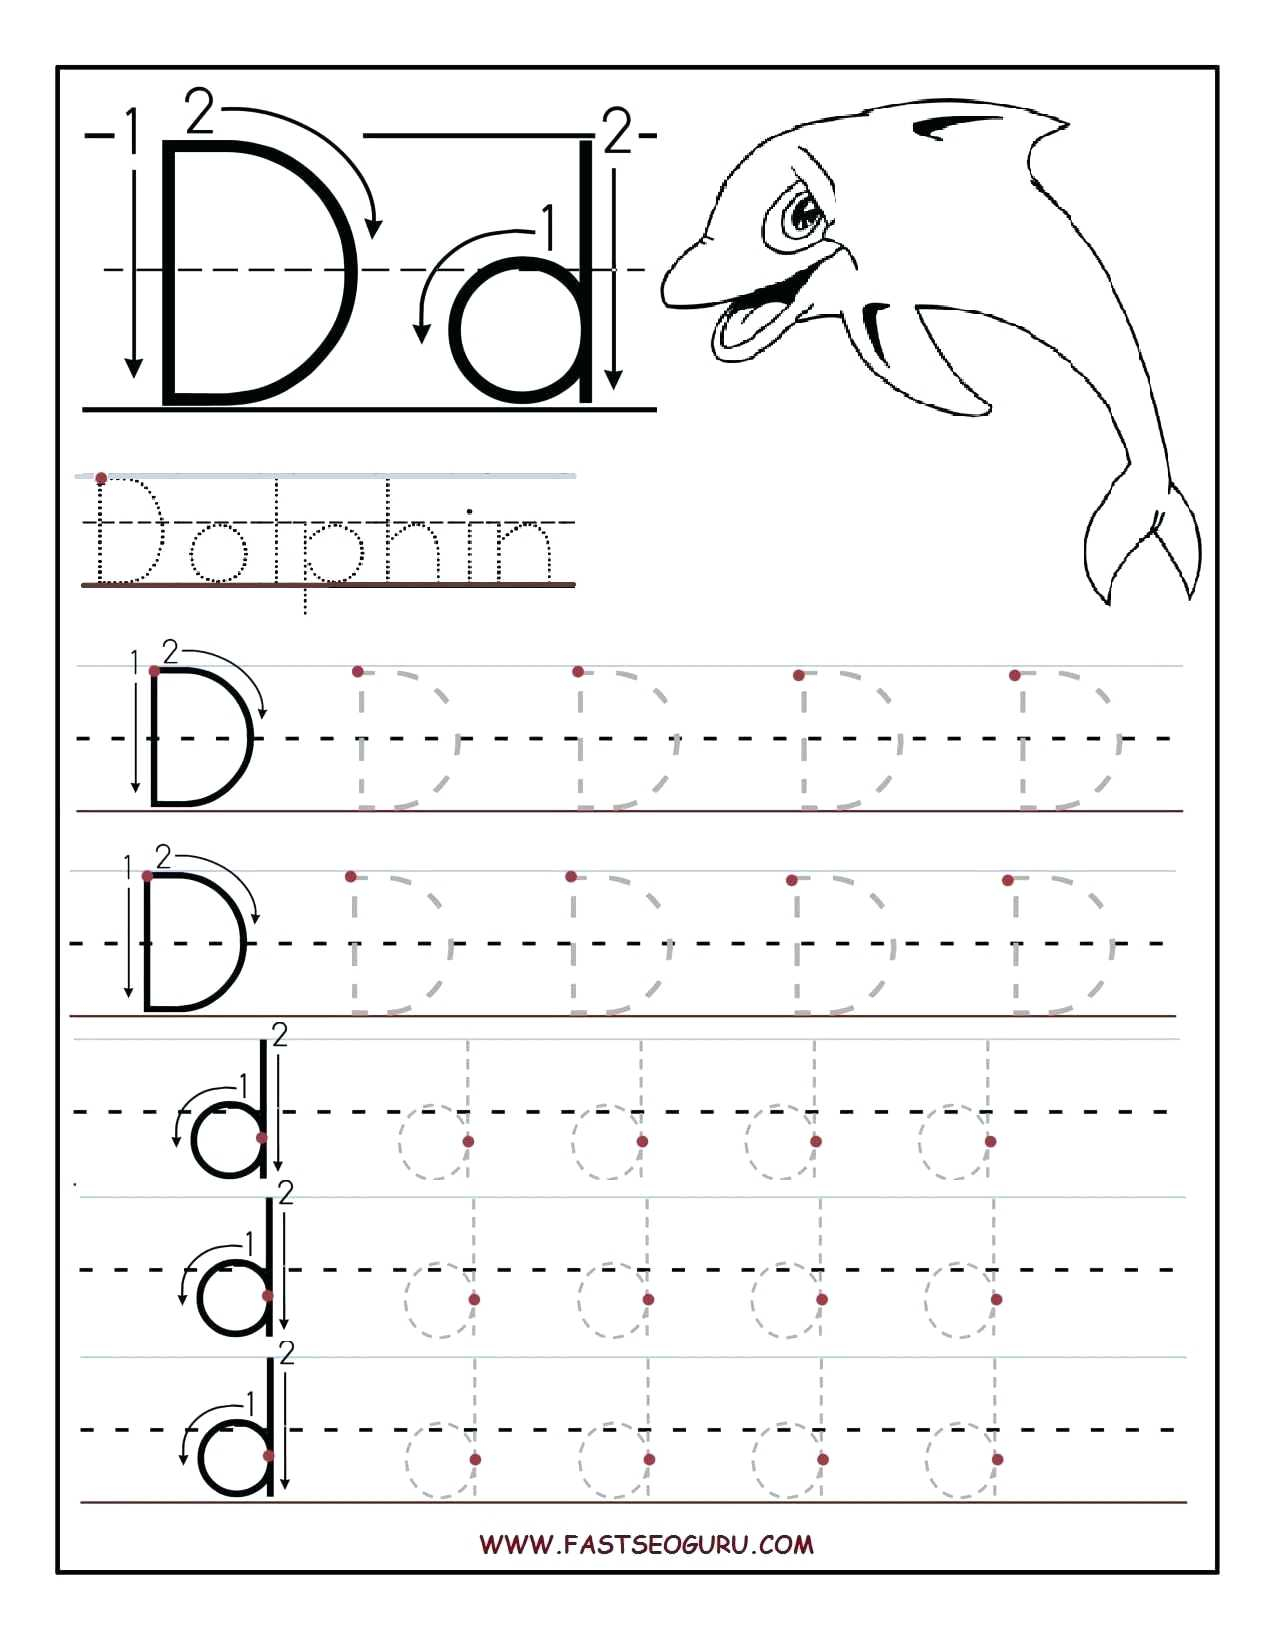 Alphabet Tracing Worksheets For 2 Year Olds